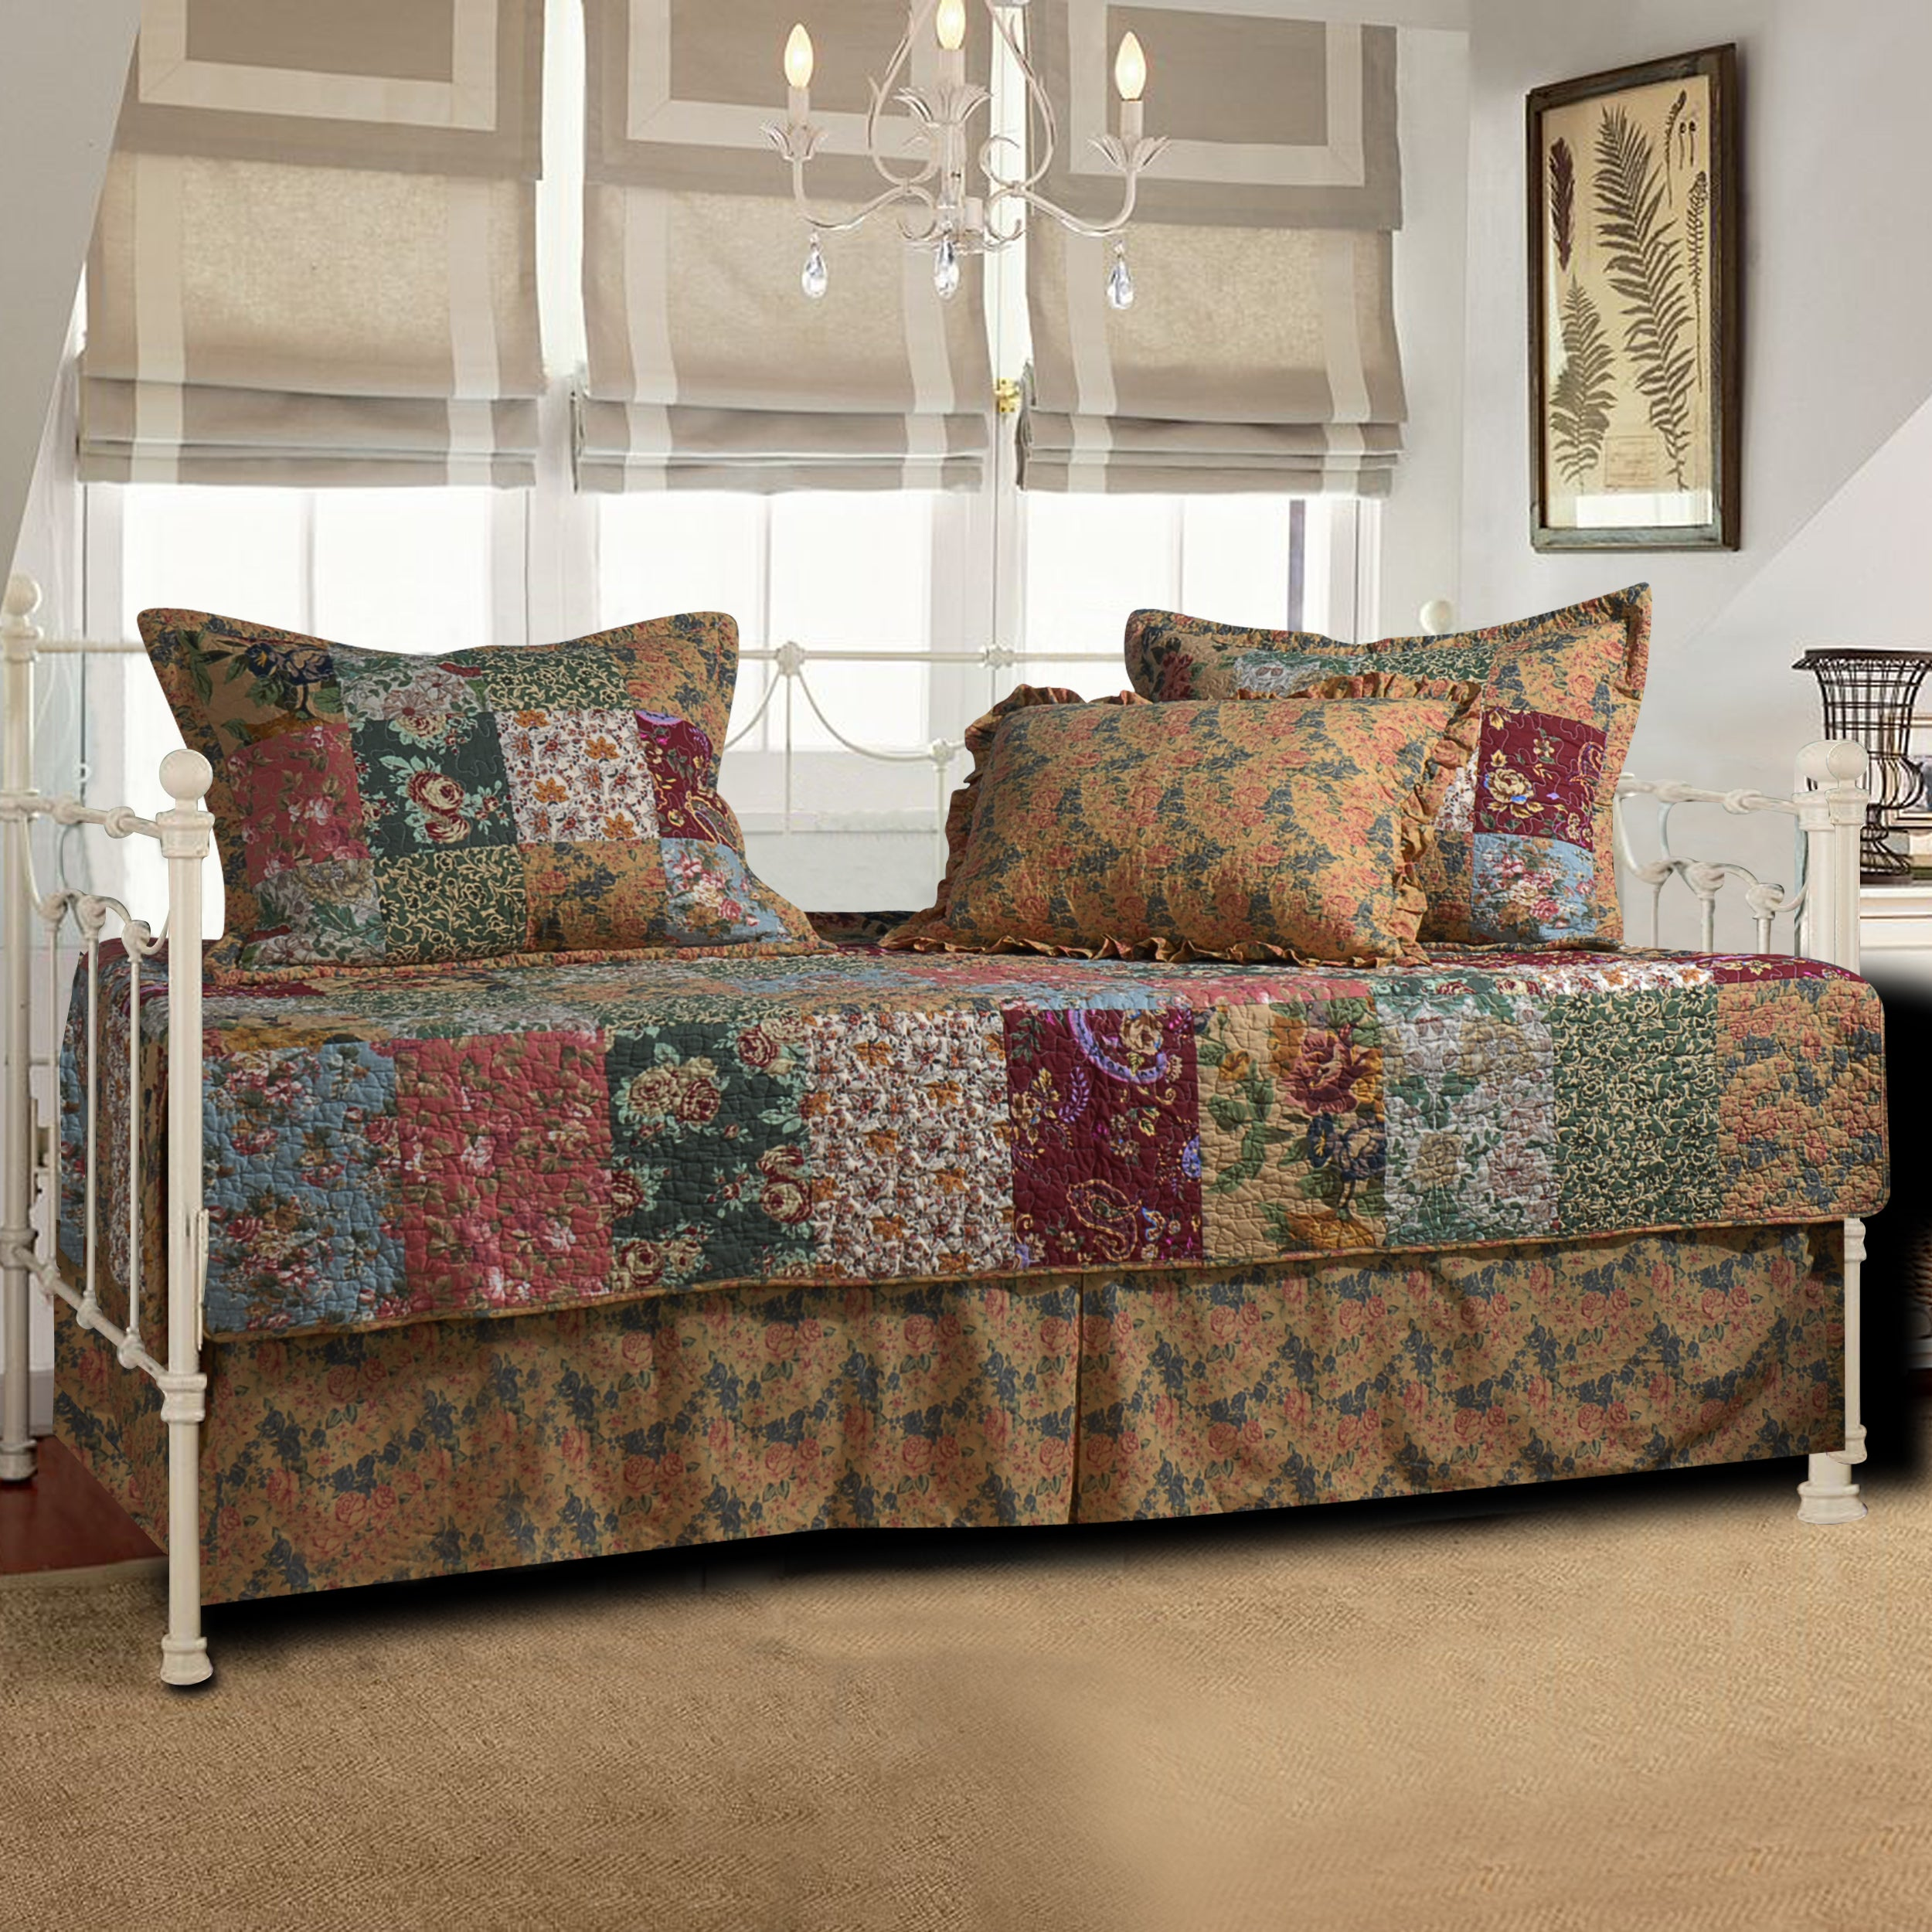 Greenland Trading Antique Chic 5-piece Daybed Set, Brown ...